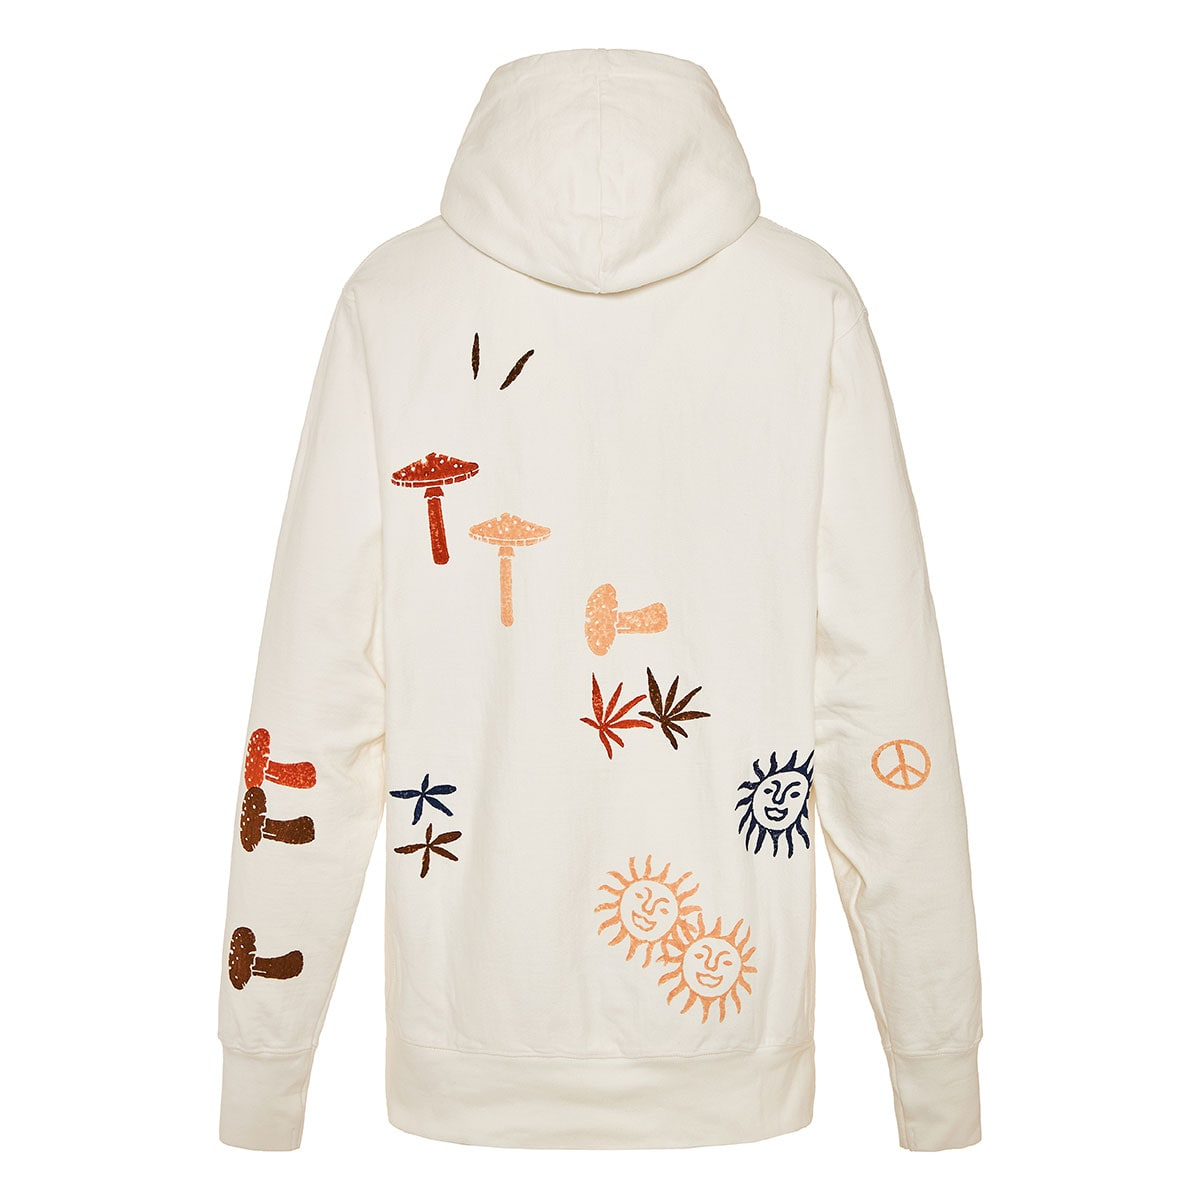 Bloom oversized printed hoodie